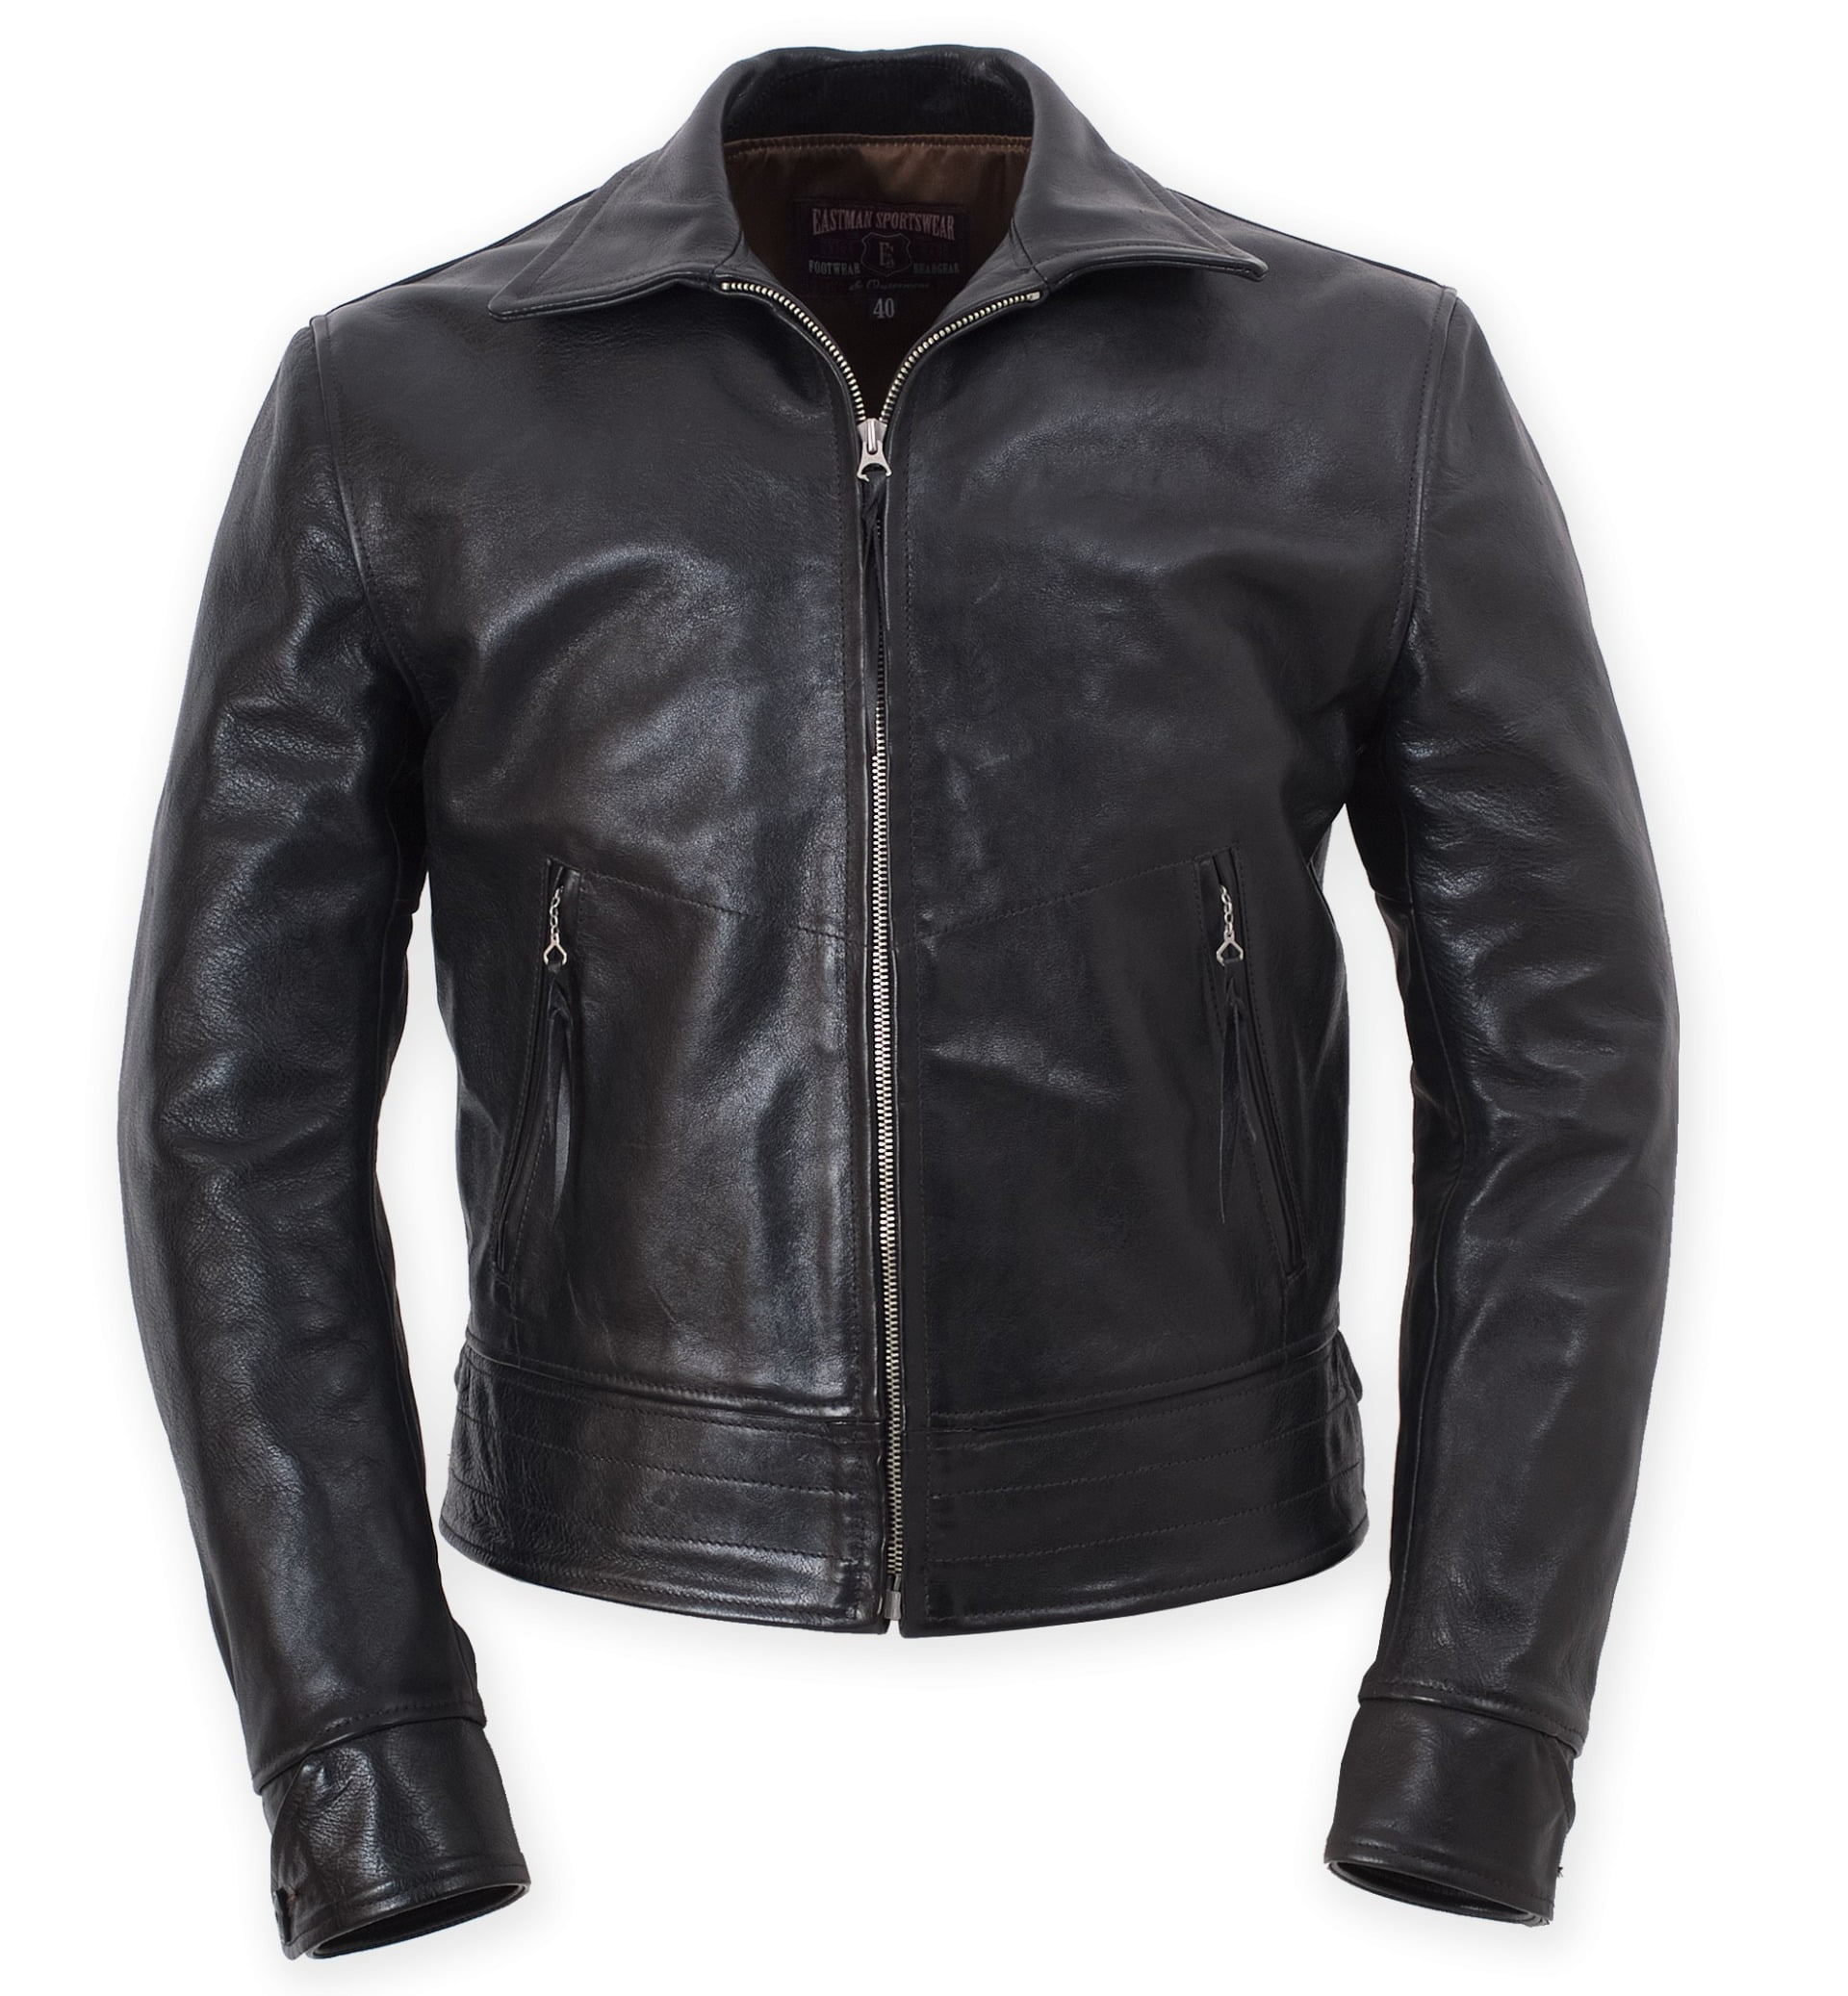 Leather JacketHIGHWAY STAR (Black)